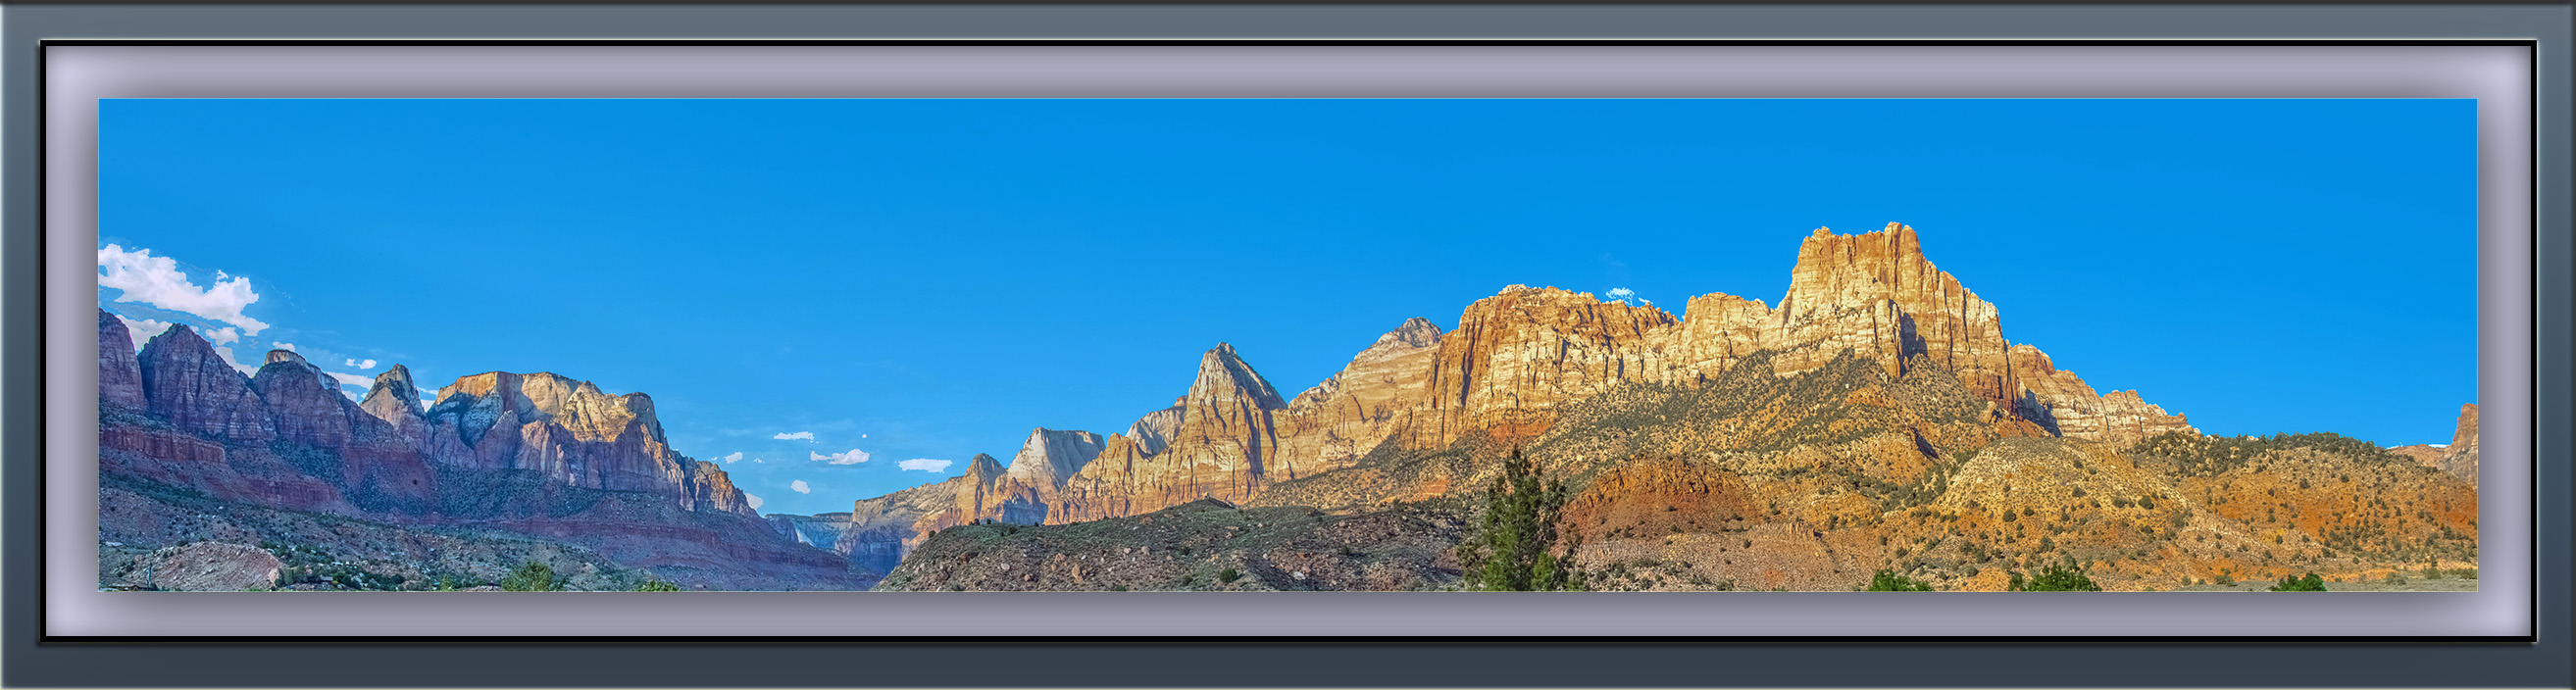 Zion Majestic View (1 of 1)-33 Panorama blog